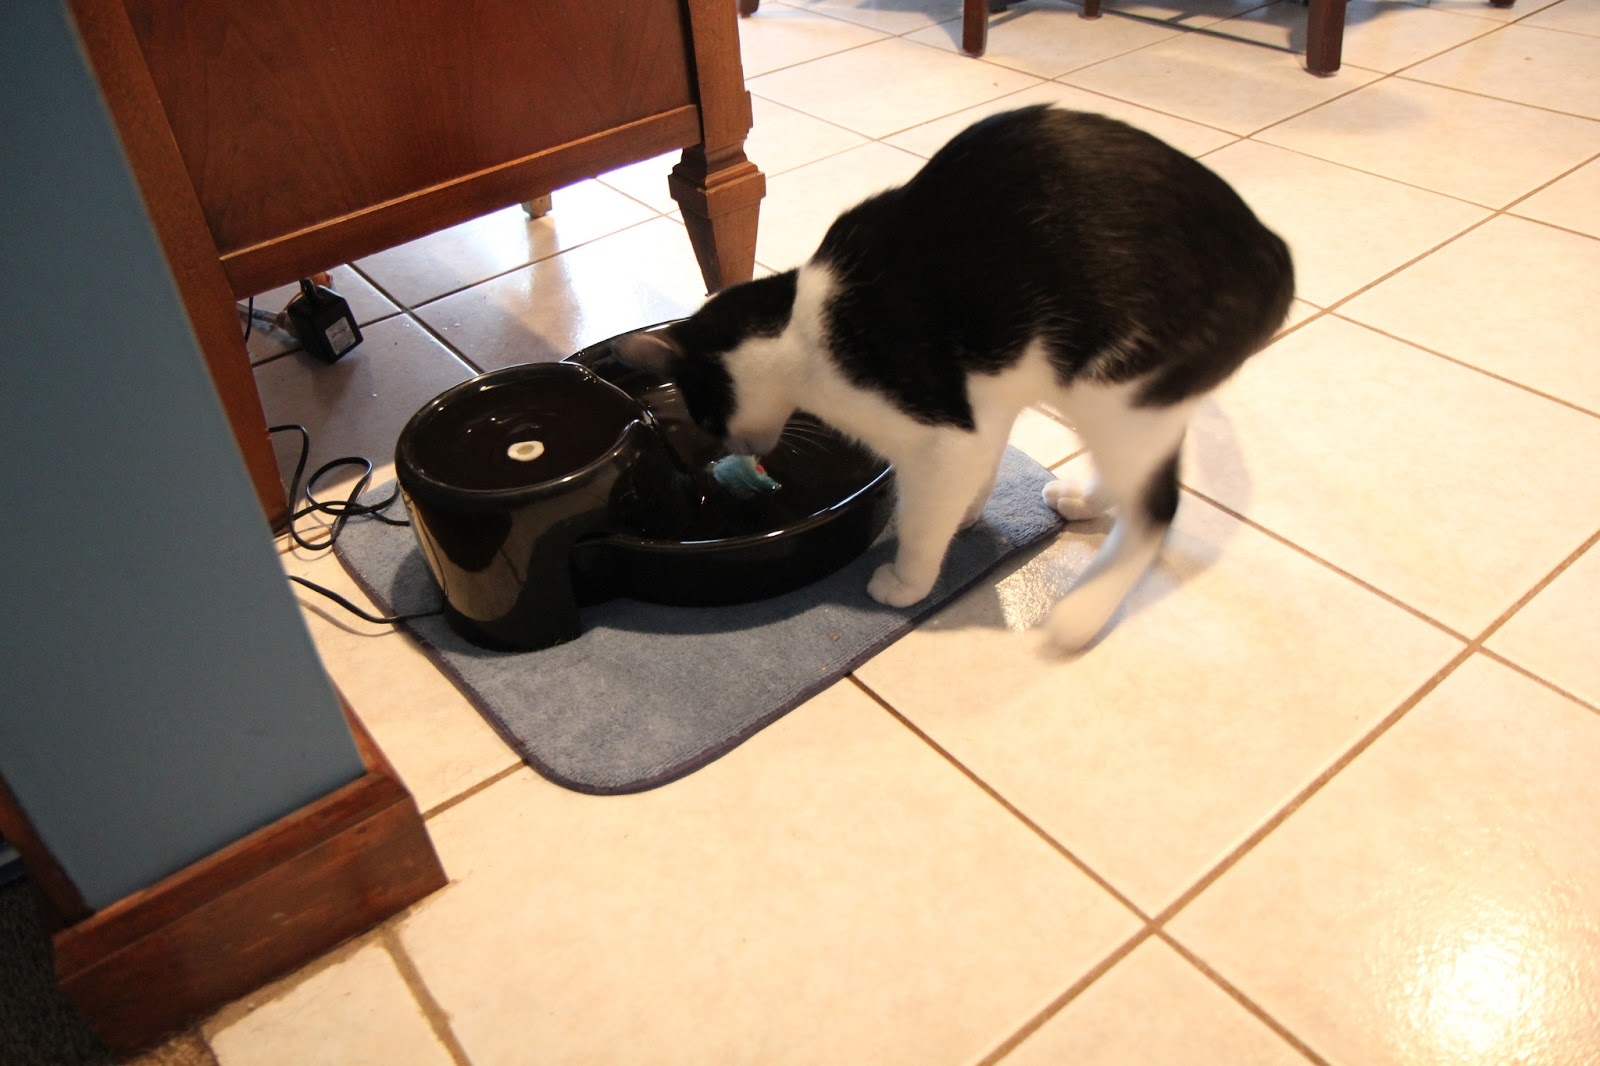 Cat sniffs toy floating in water bowl.